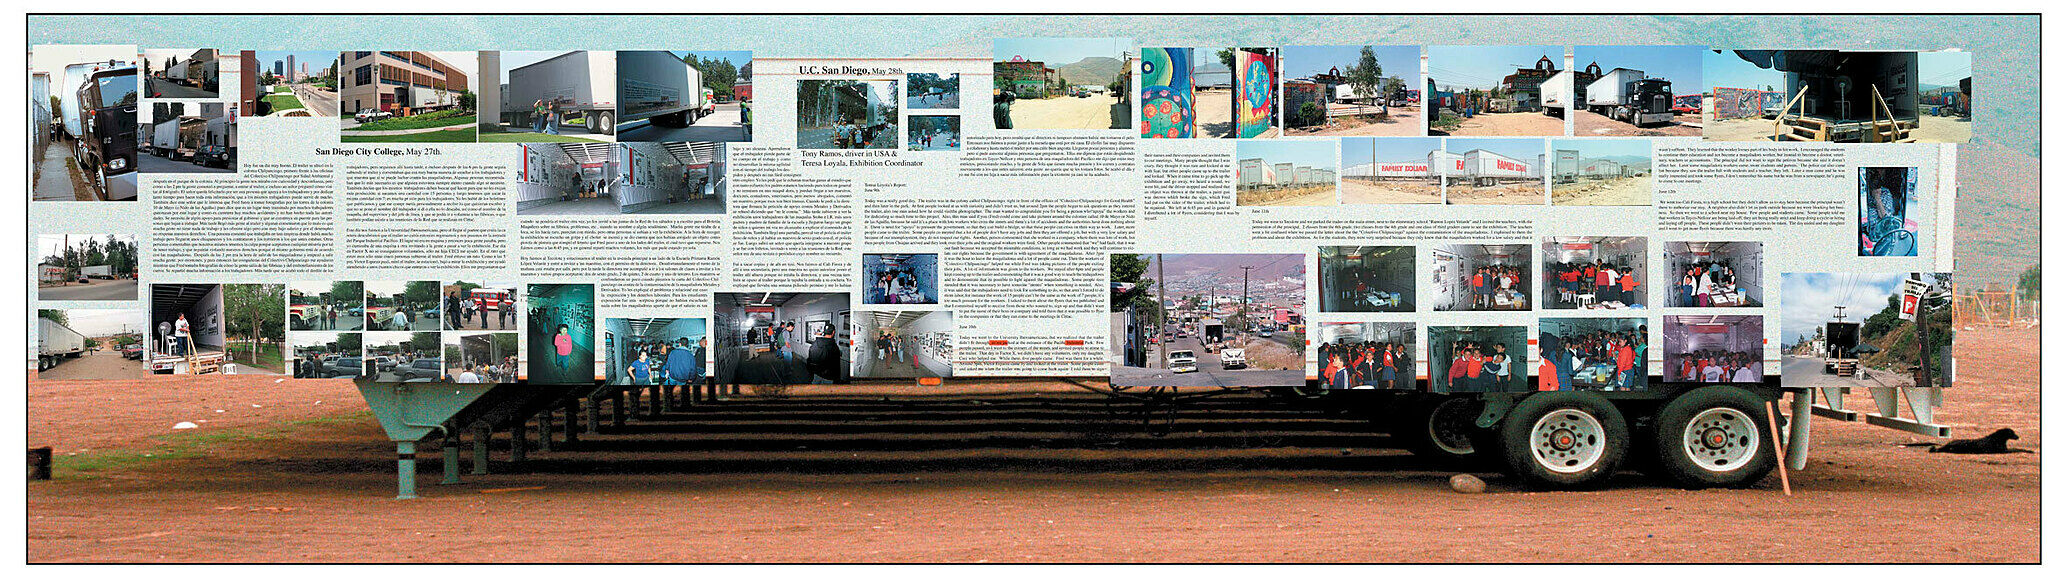 A collage of newspaper and images about trucks and workers.